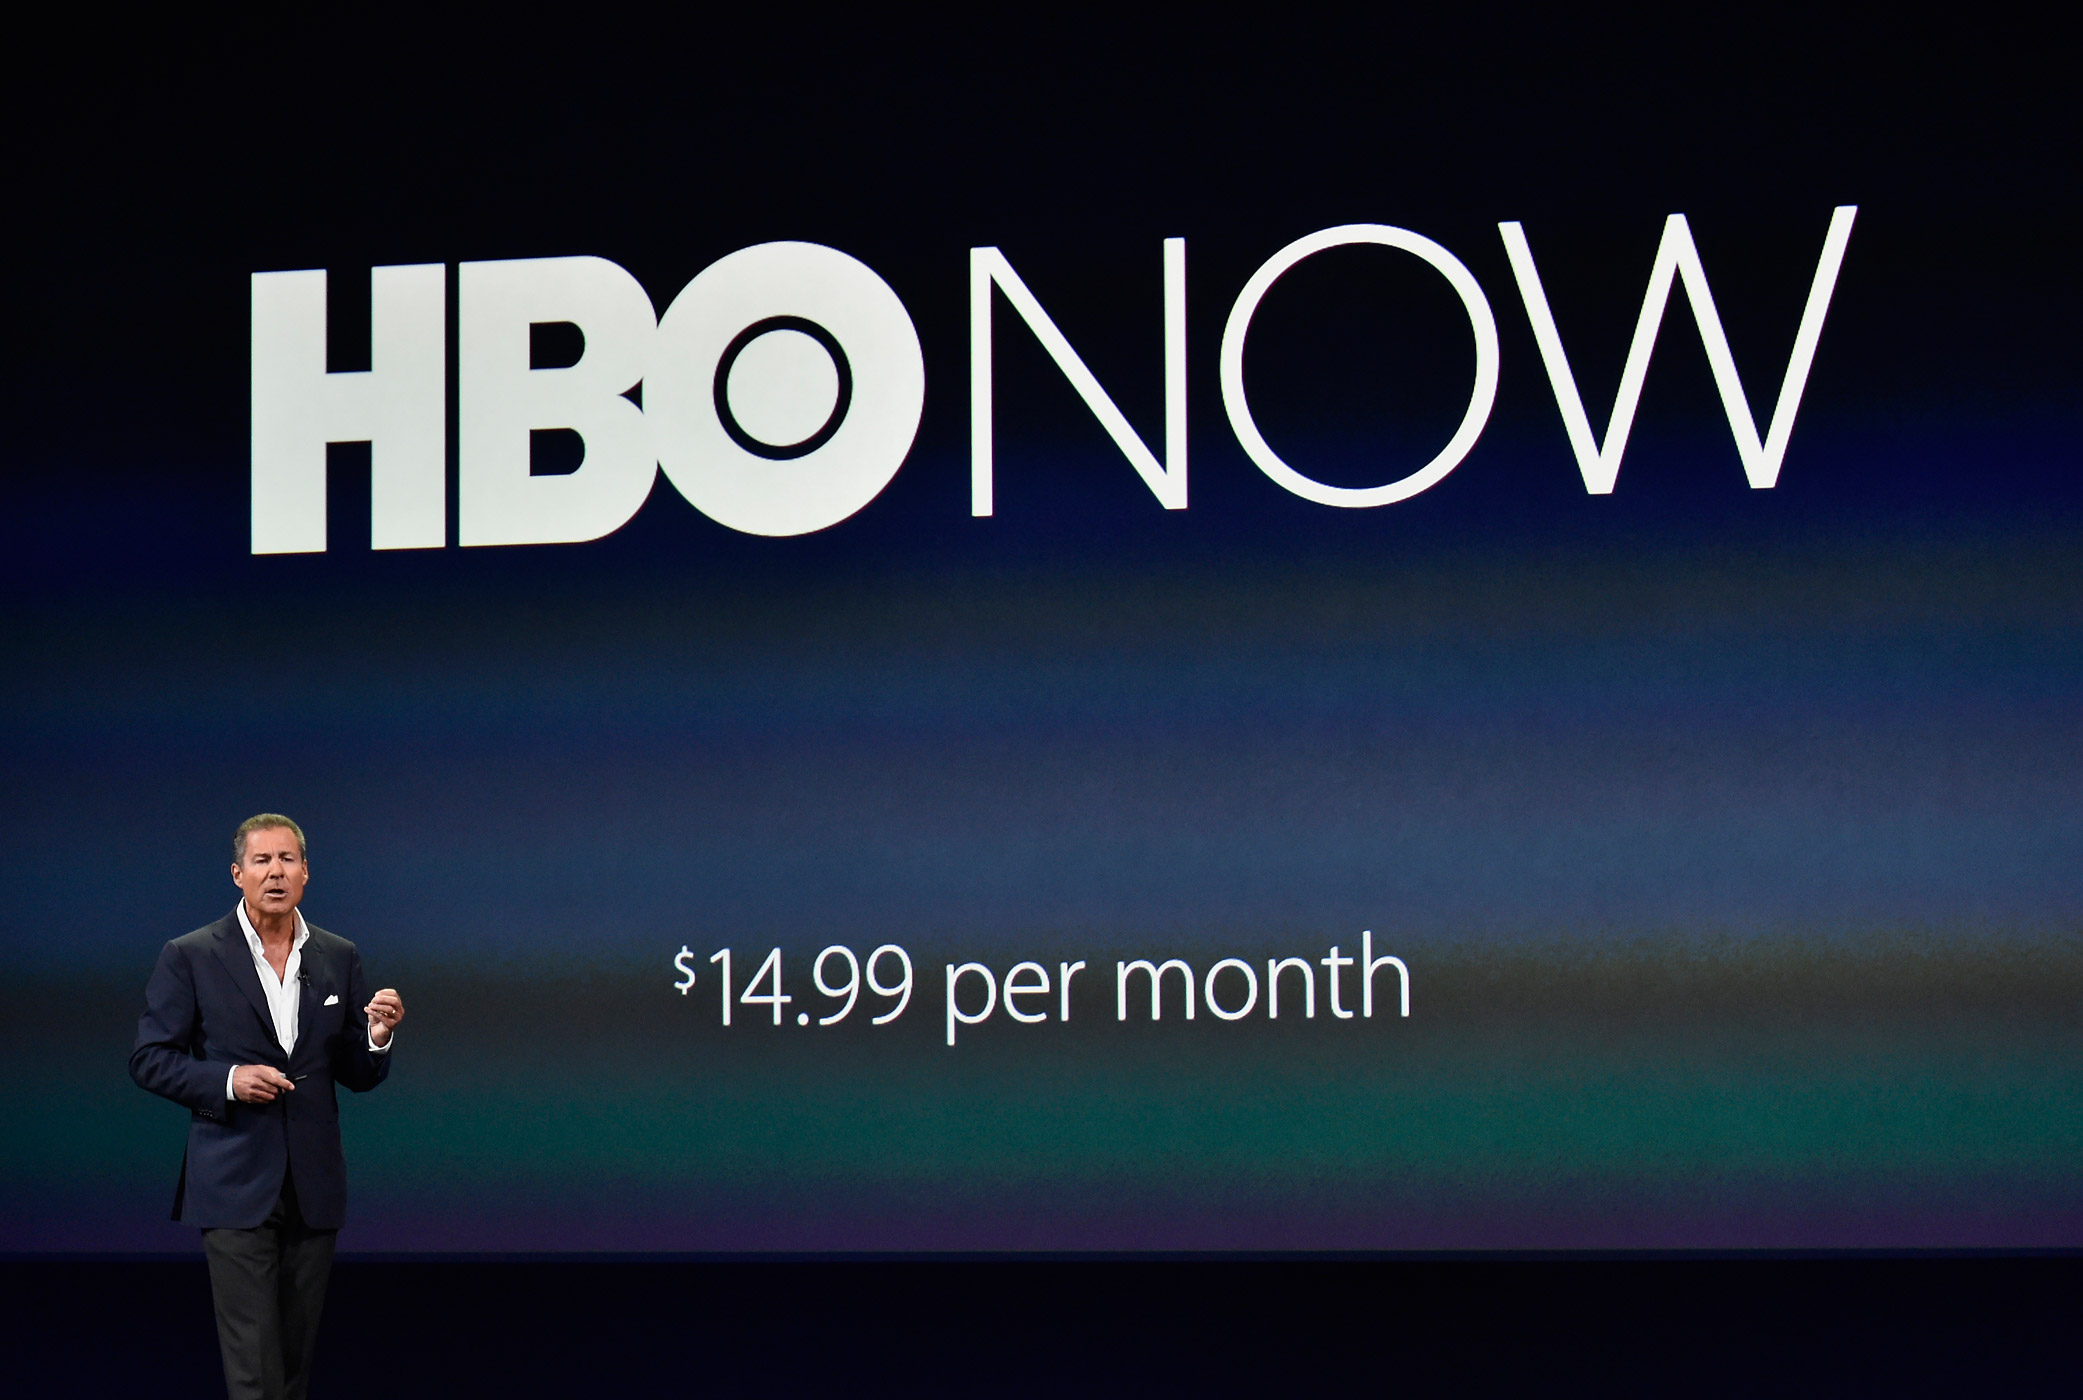 Richard Plepler, CEO of HBO, speaks during the Apple Spring Forward event in San Francisco, Calif. on March 9, 2015.